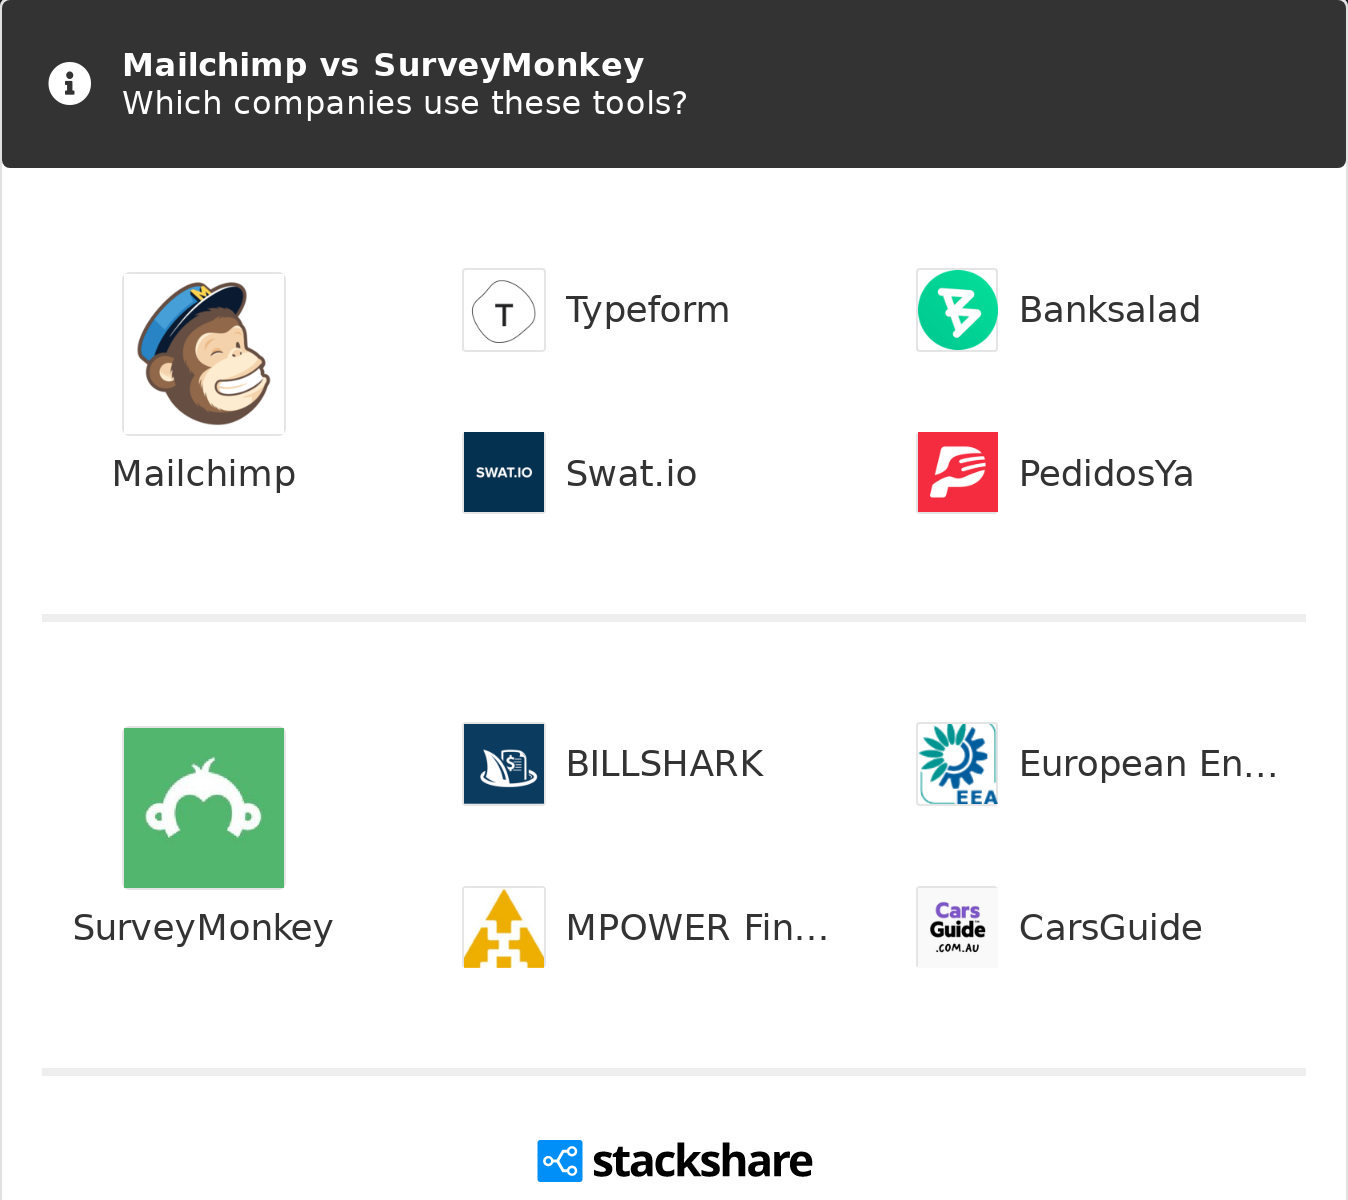 Mailchimp Vs Surveymonkey What Are The Differences